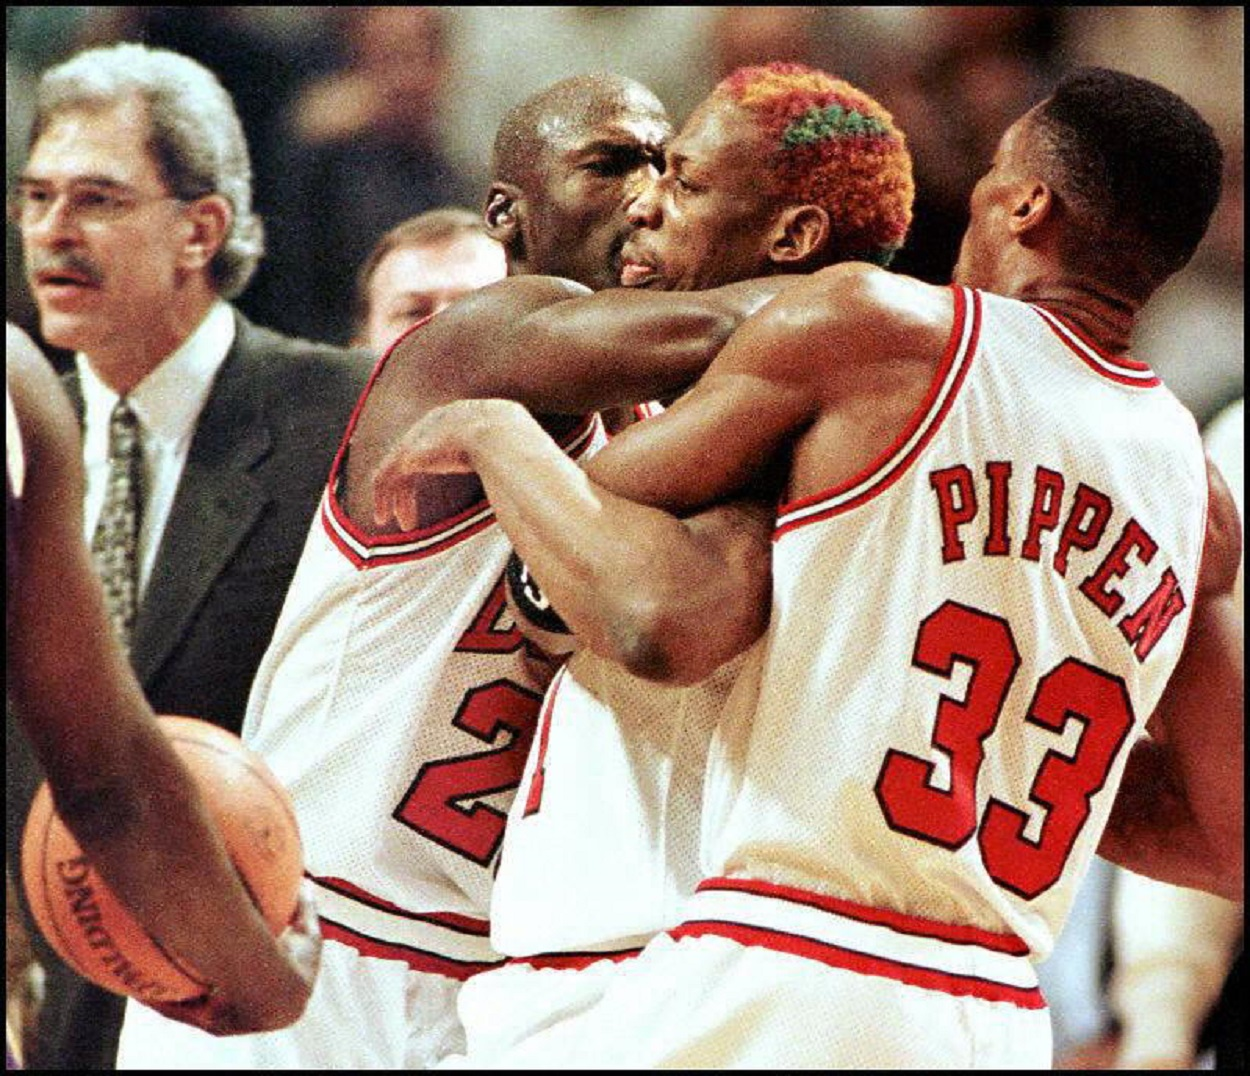 Michael Jordan and Scottie Pippen Legit Tackled Dennis Rodman During an Epic Bulls-Lakers Matchup That Featured a Big Moment for Kobe Bryant